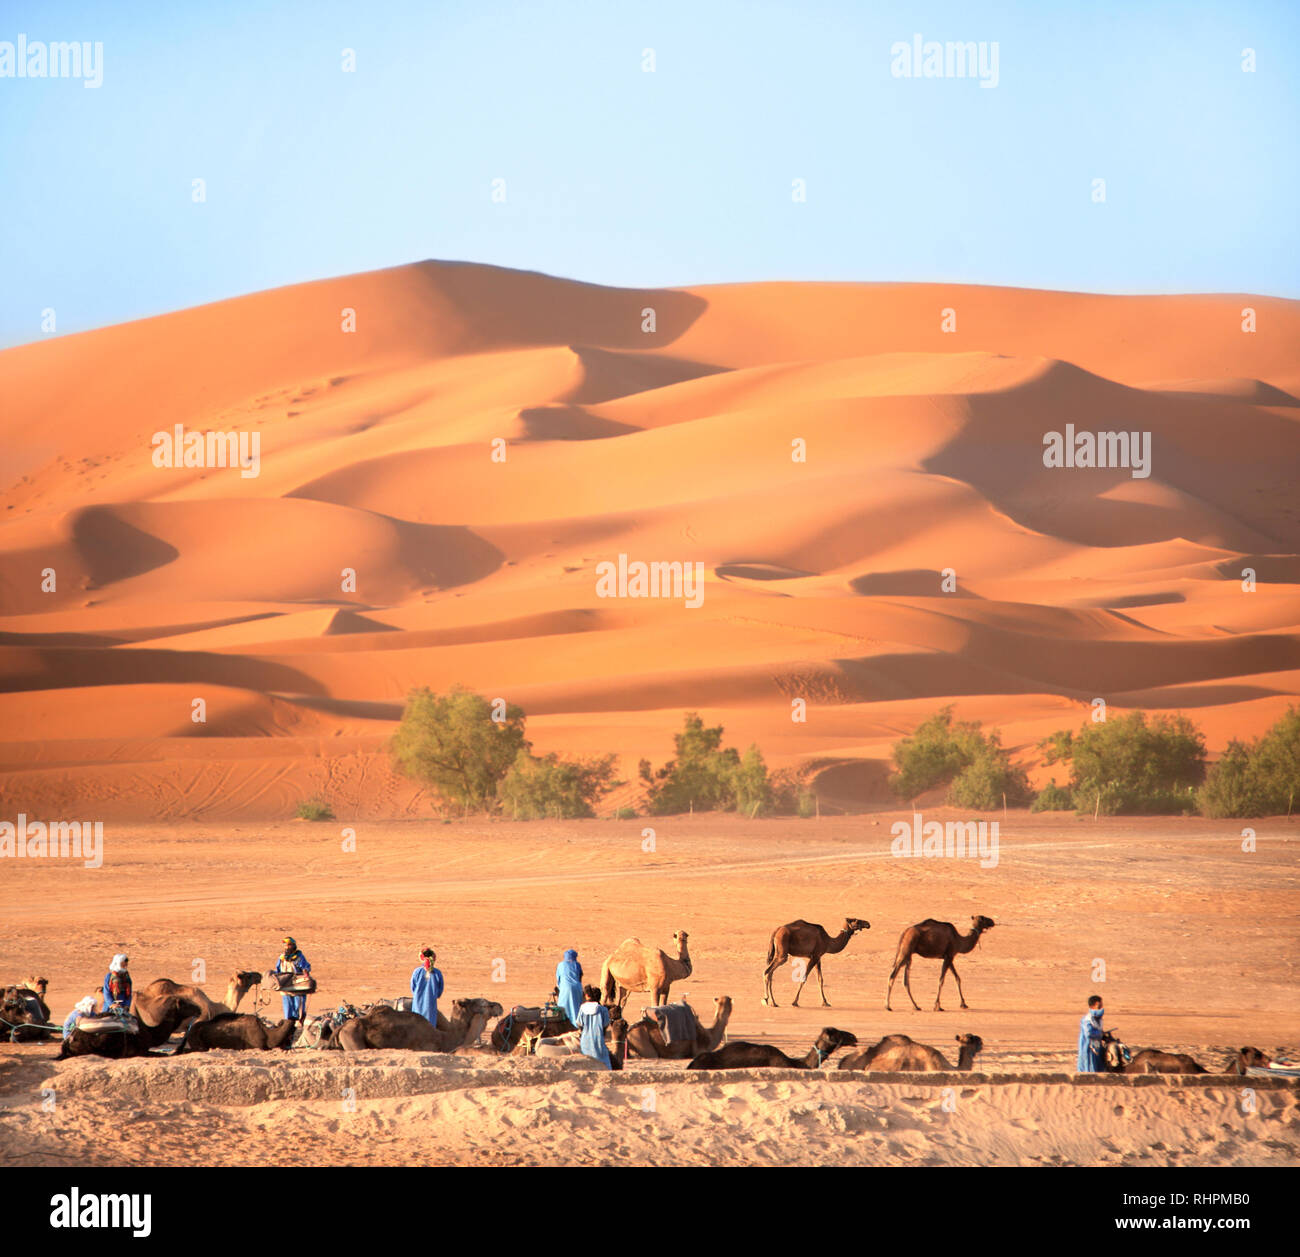 Berbers in traditional clothing and resting camels in Sahara desert, Morocco - Stock Image